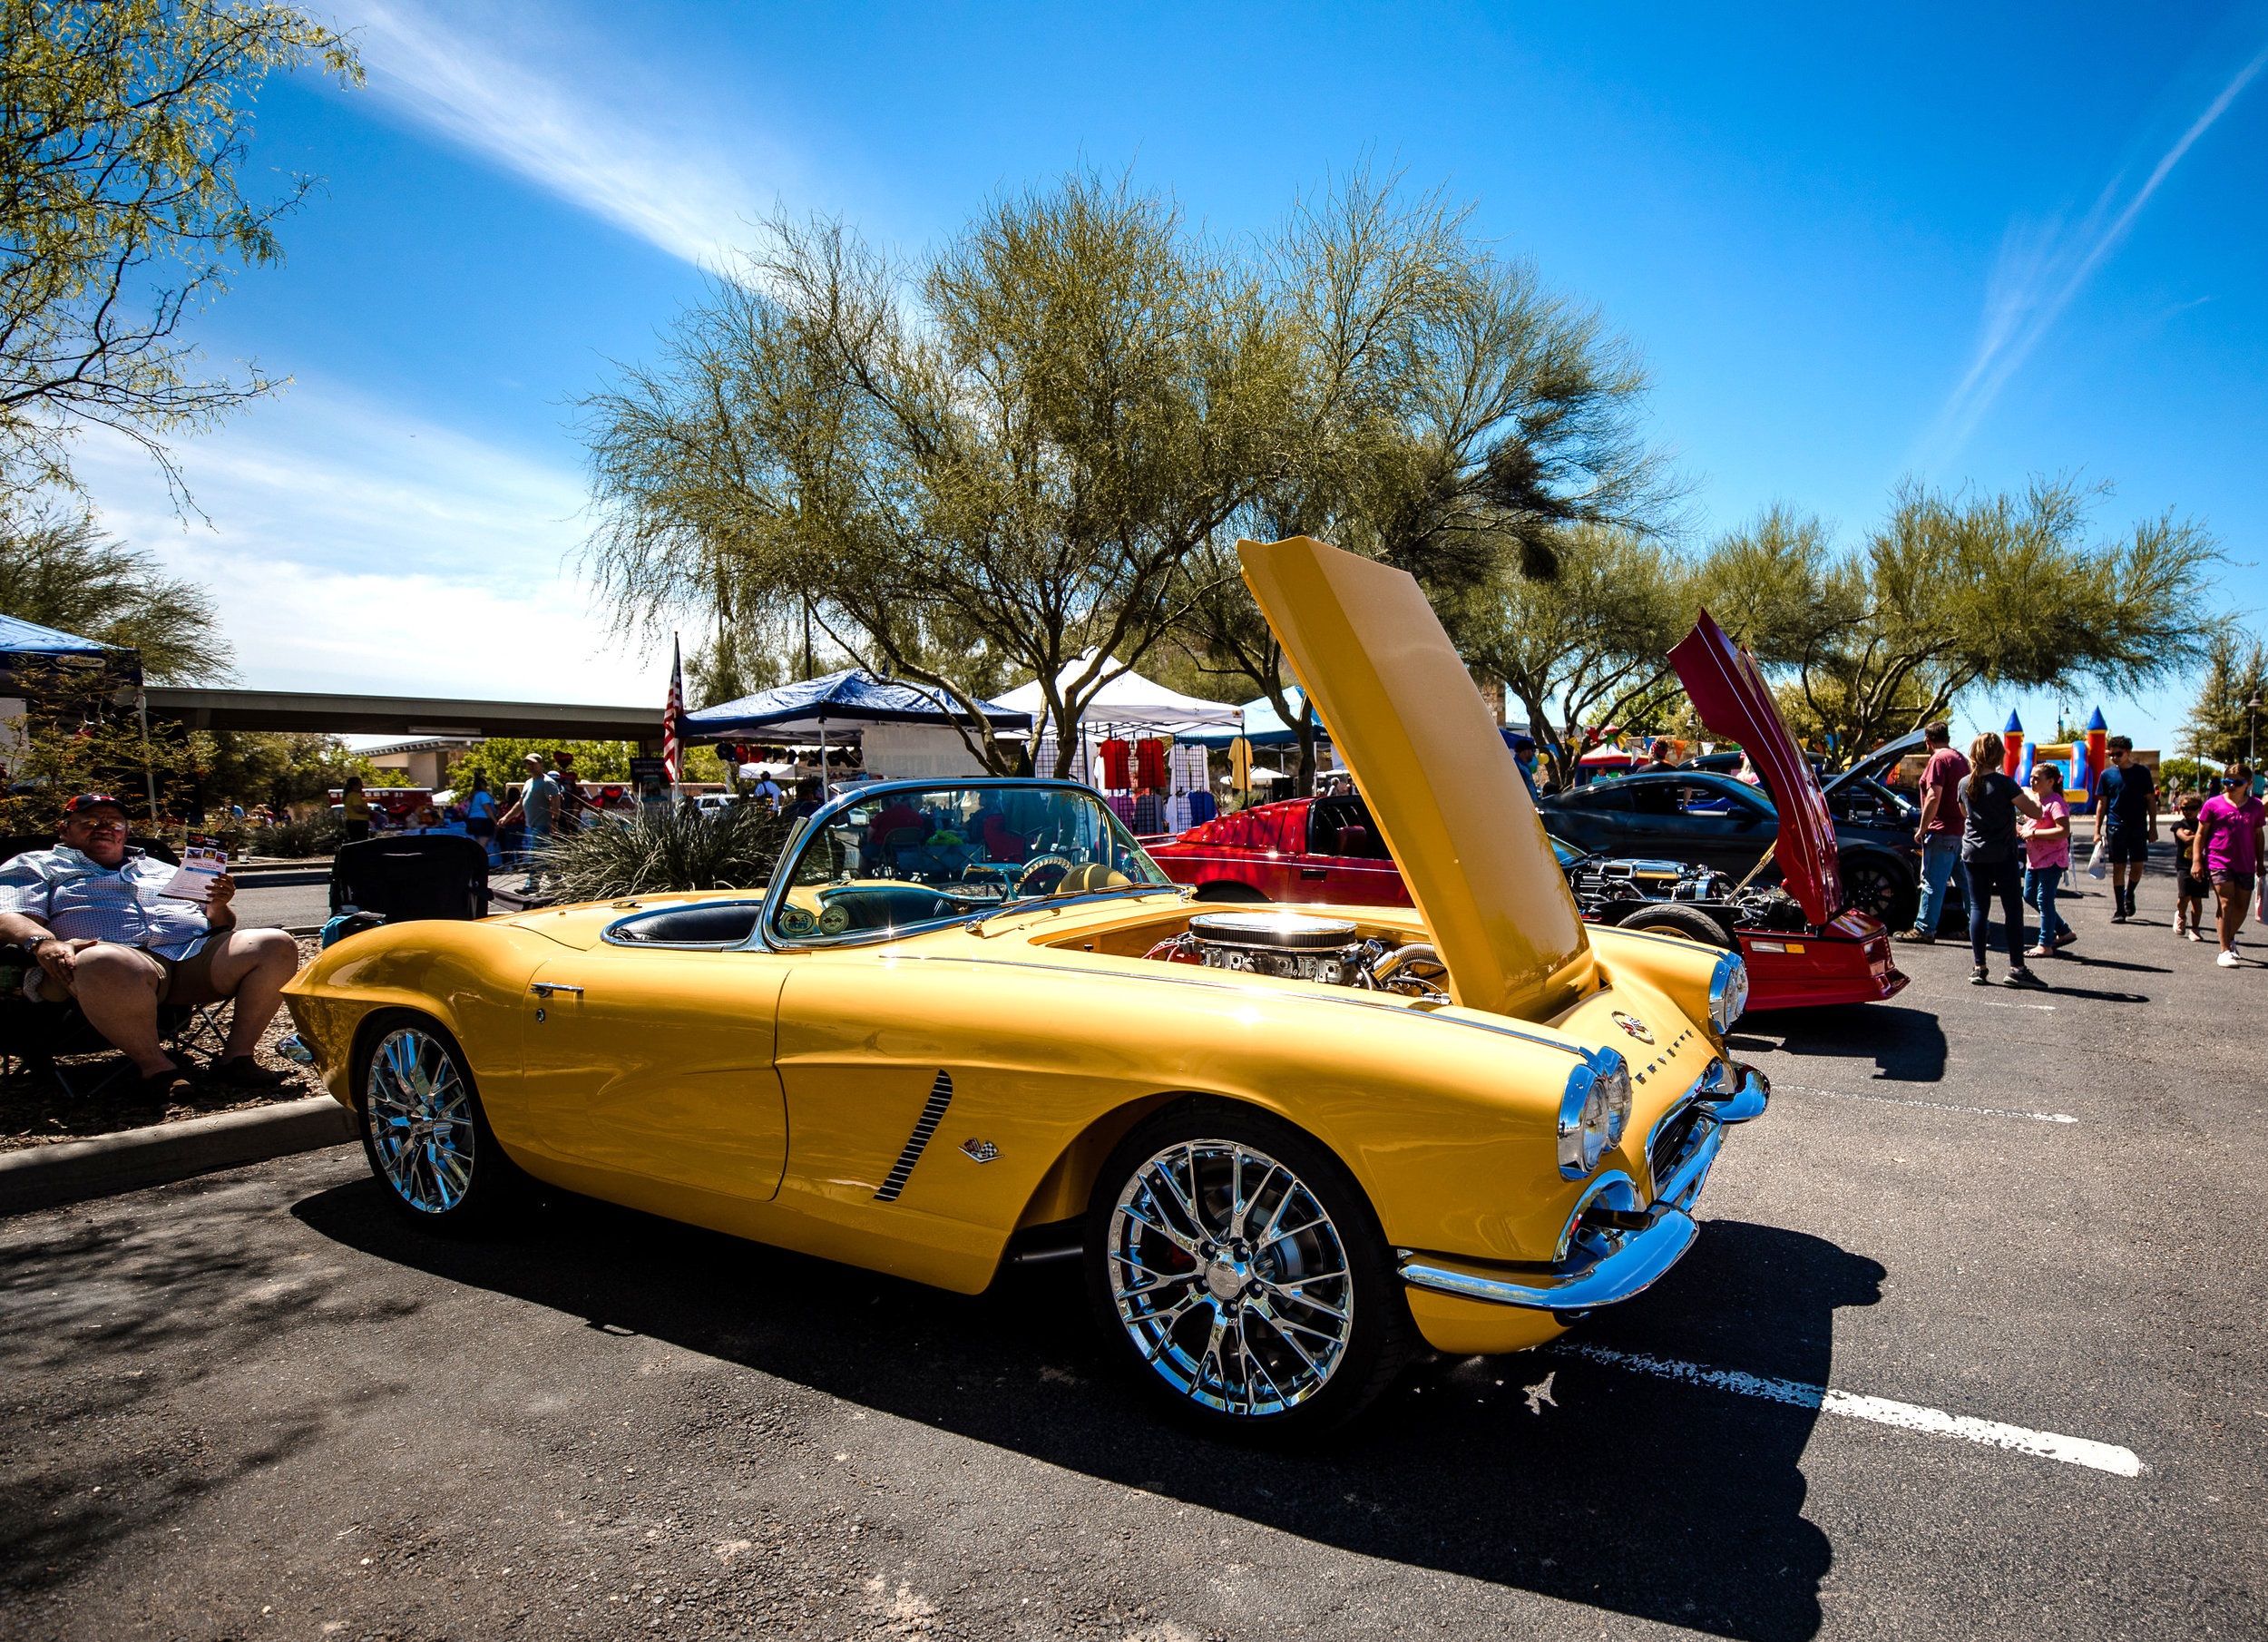 This classic Corvette won Best of Show at the car show